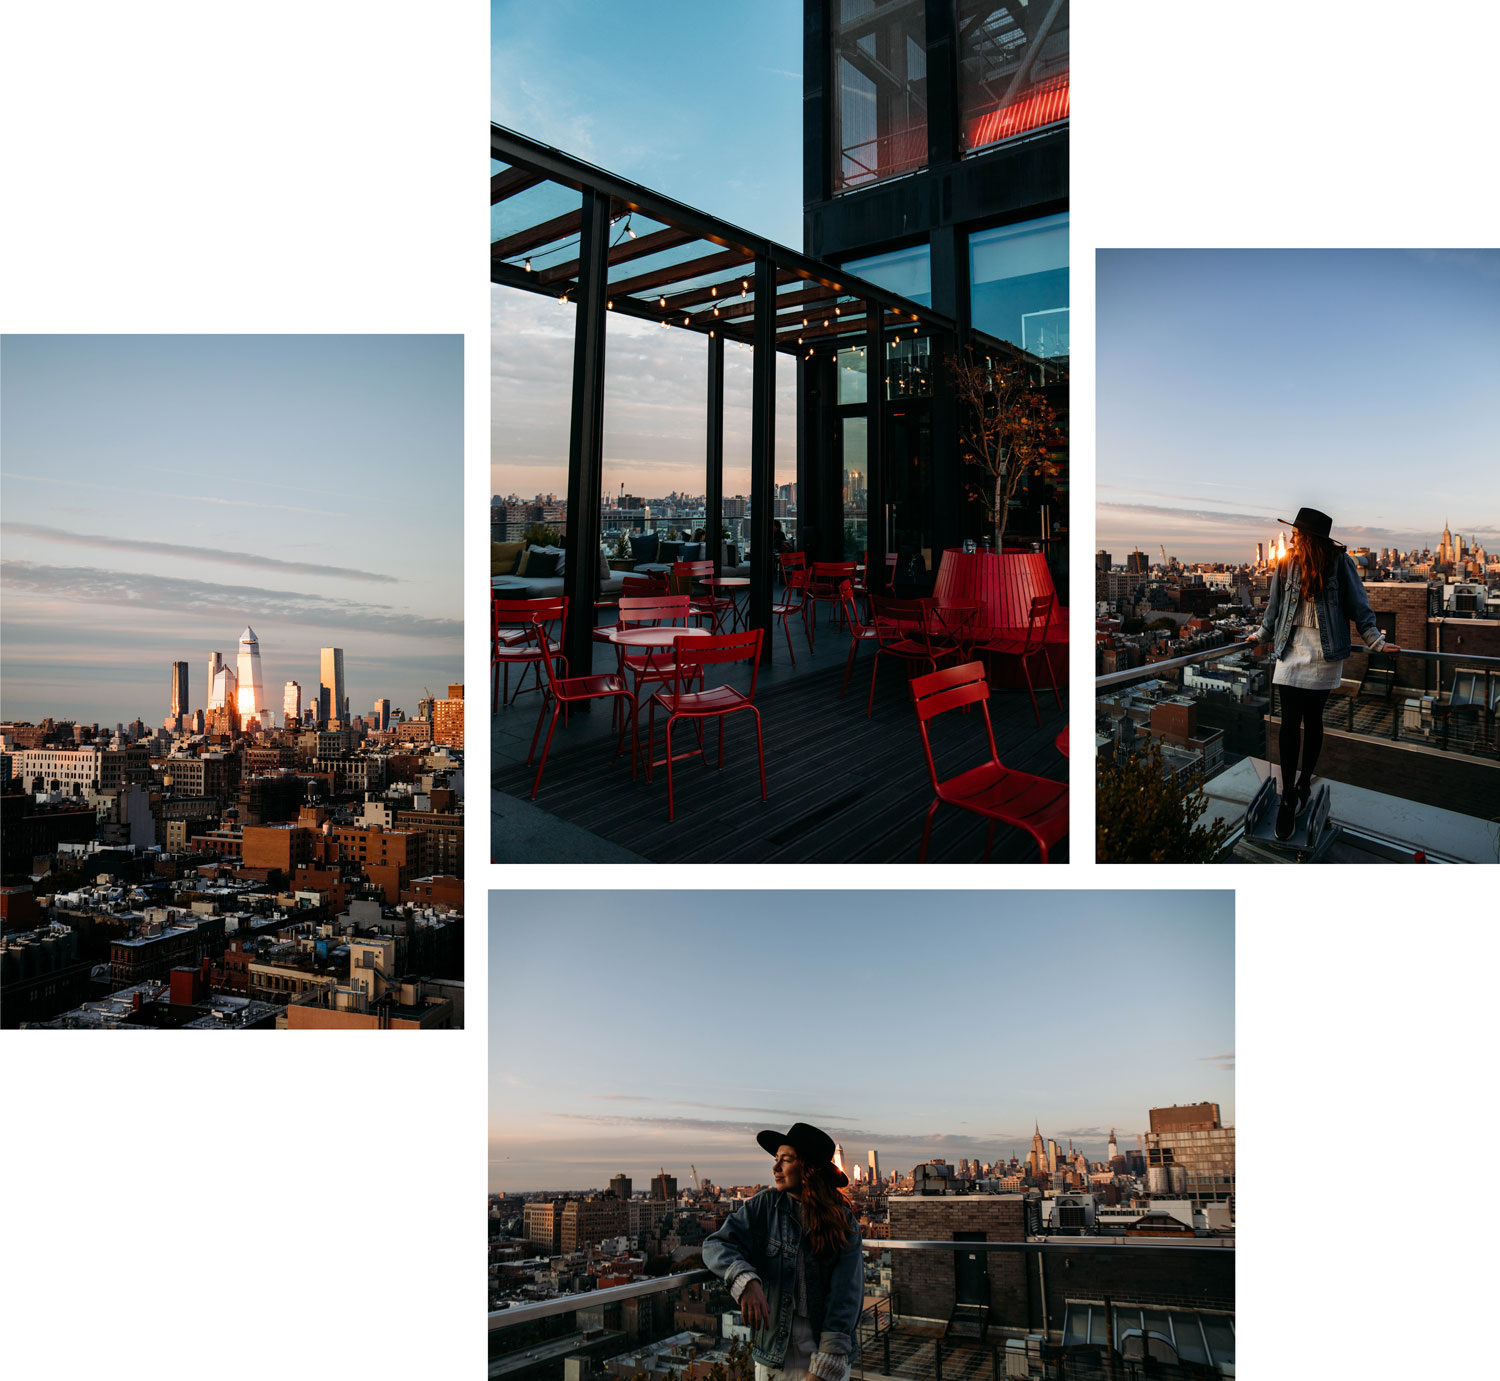 citizenm bowery beau rooftop new york